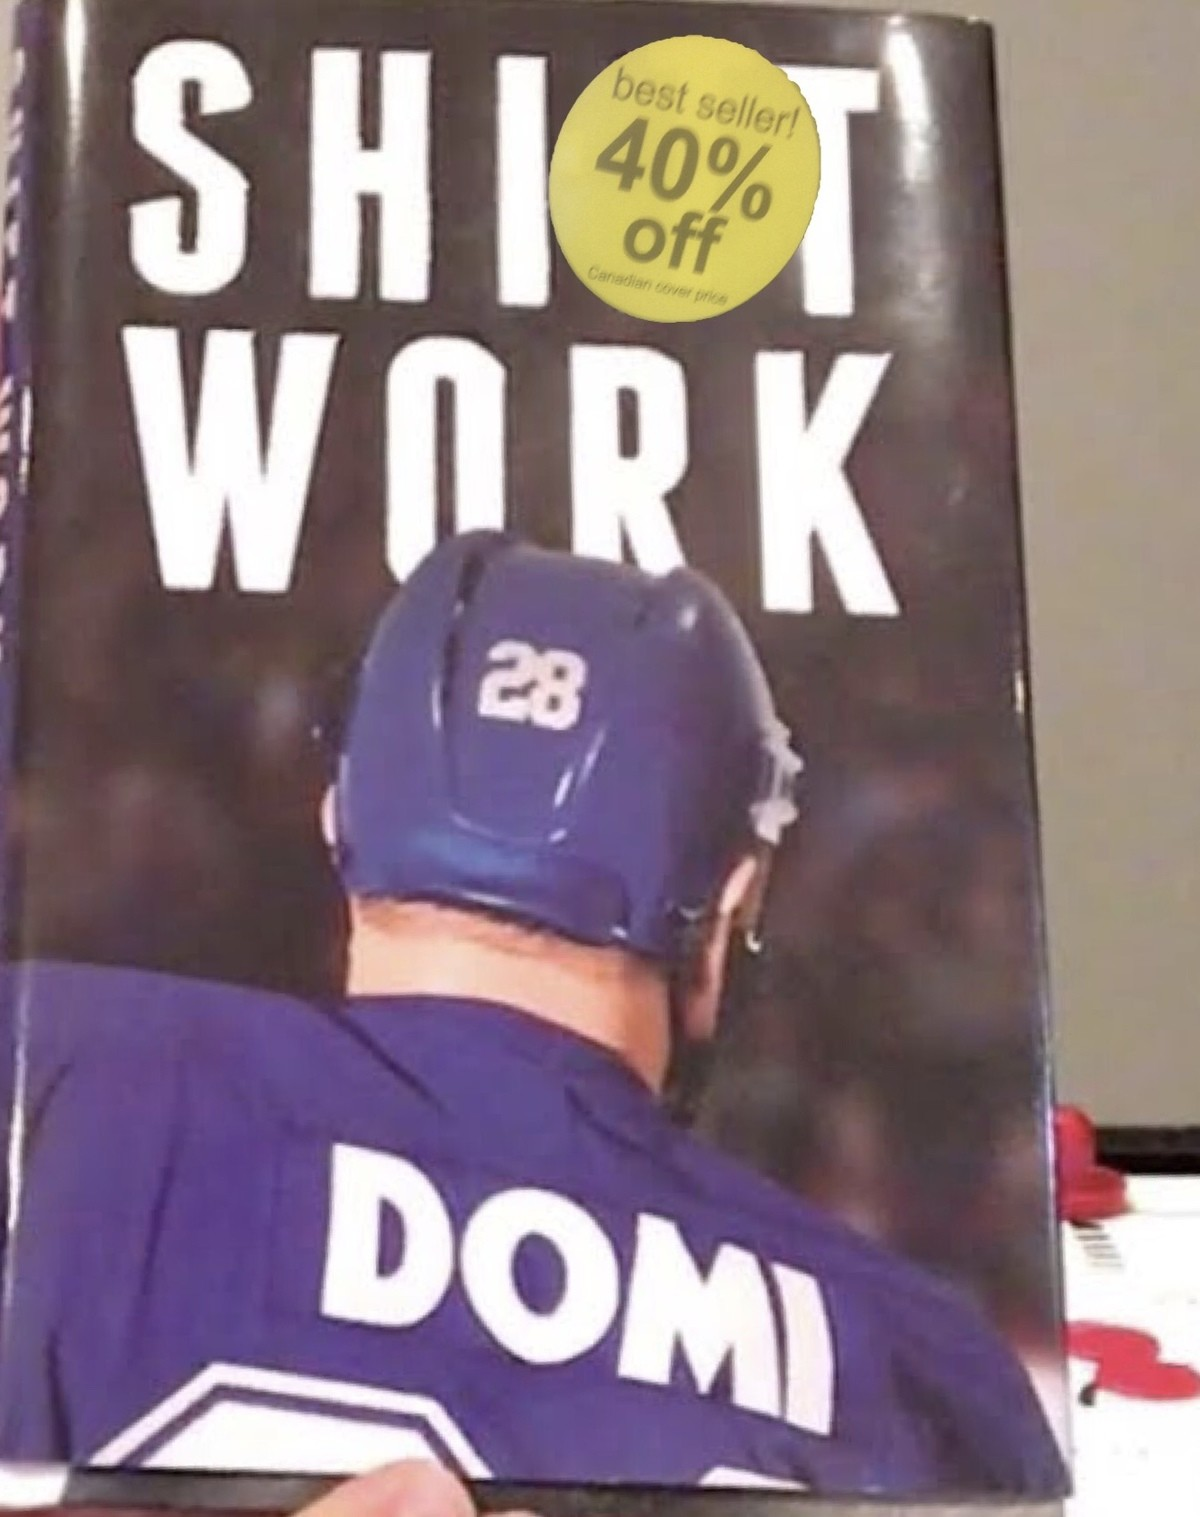 The book store workers knew what they were doing.... Domi was a hockey player (one of the worst in the league).. that's a shop.